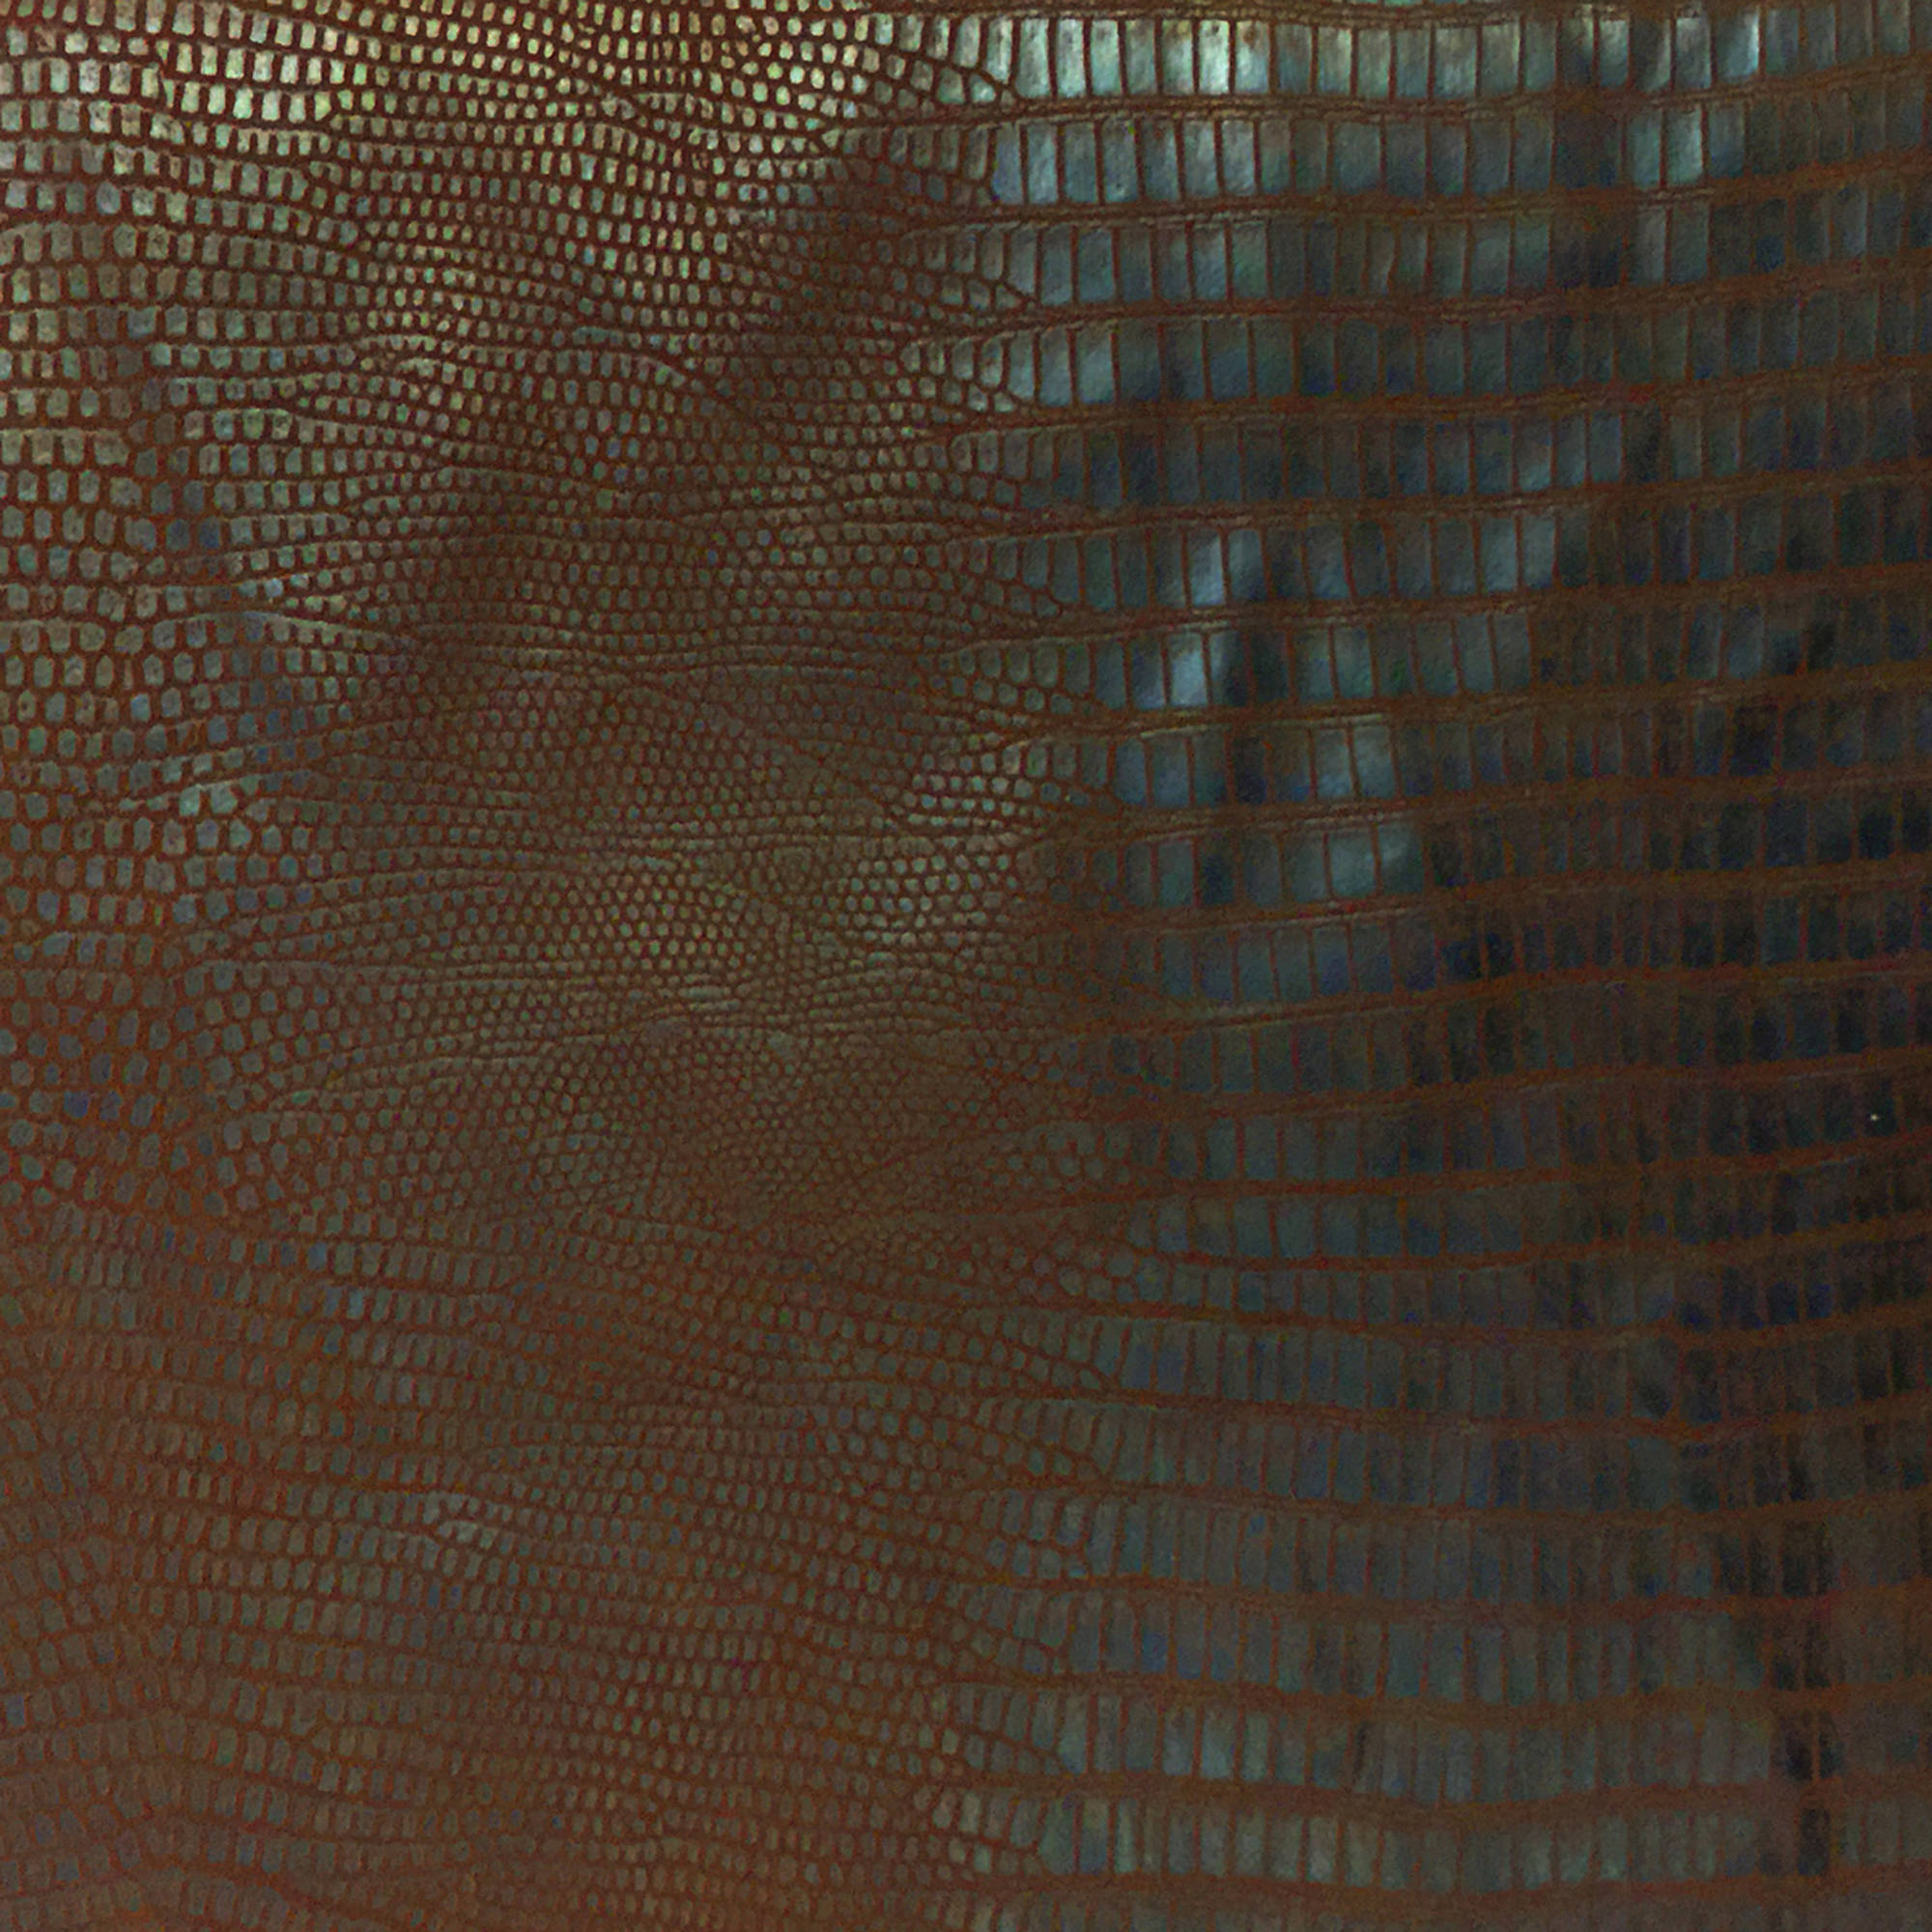 Shason Textile Faux Leather Alligator Print Upholstery Fabric